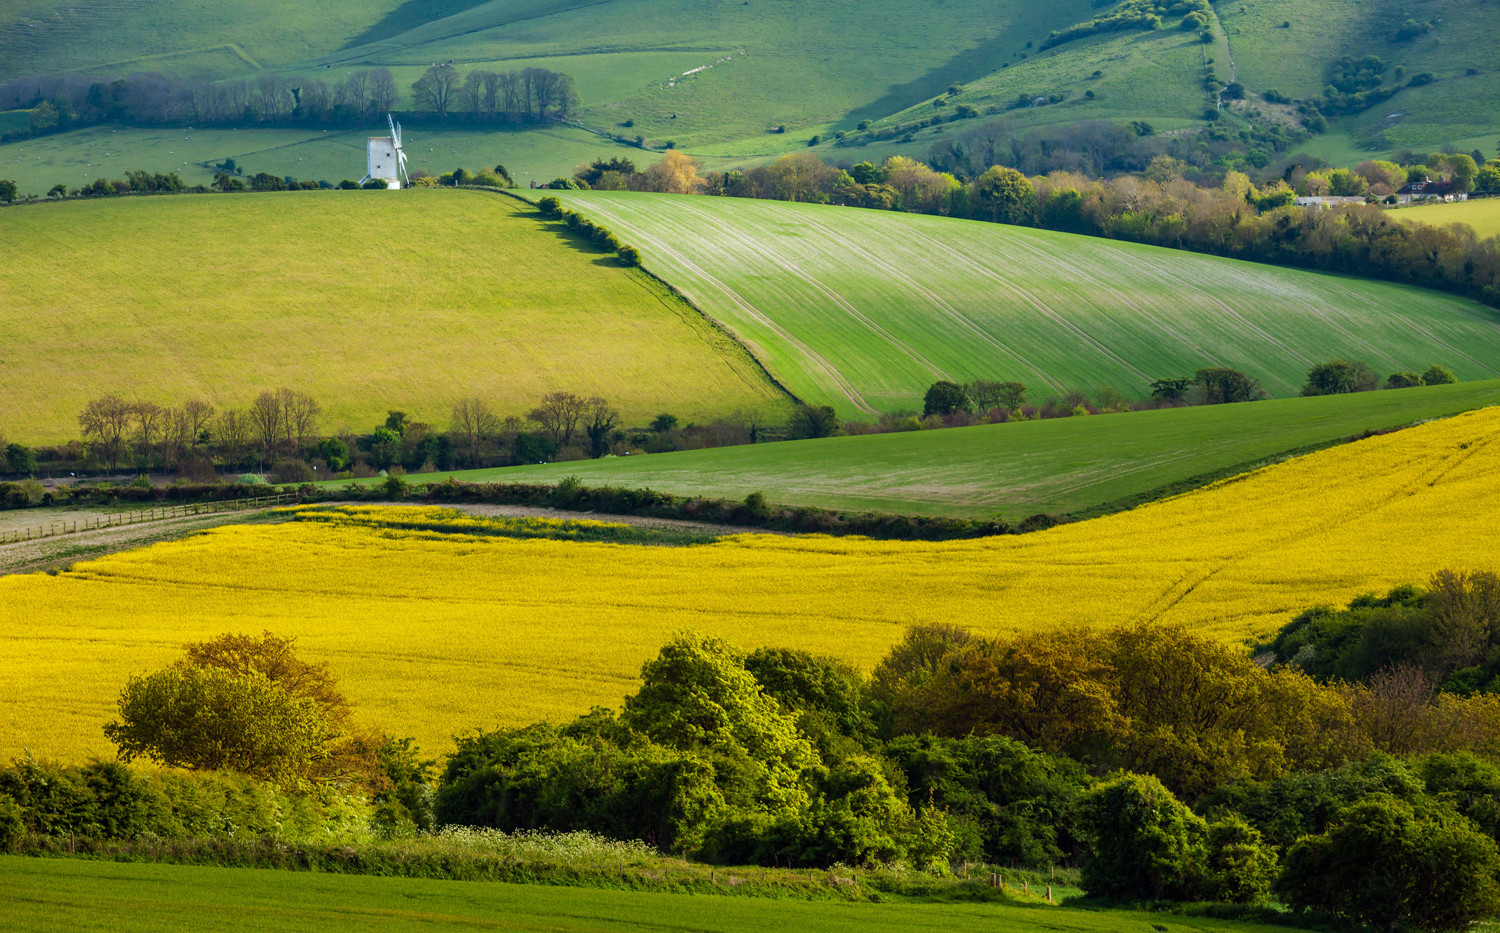 South Downs near Lewes, East Sussex, 27th April 2017